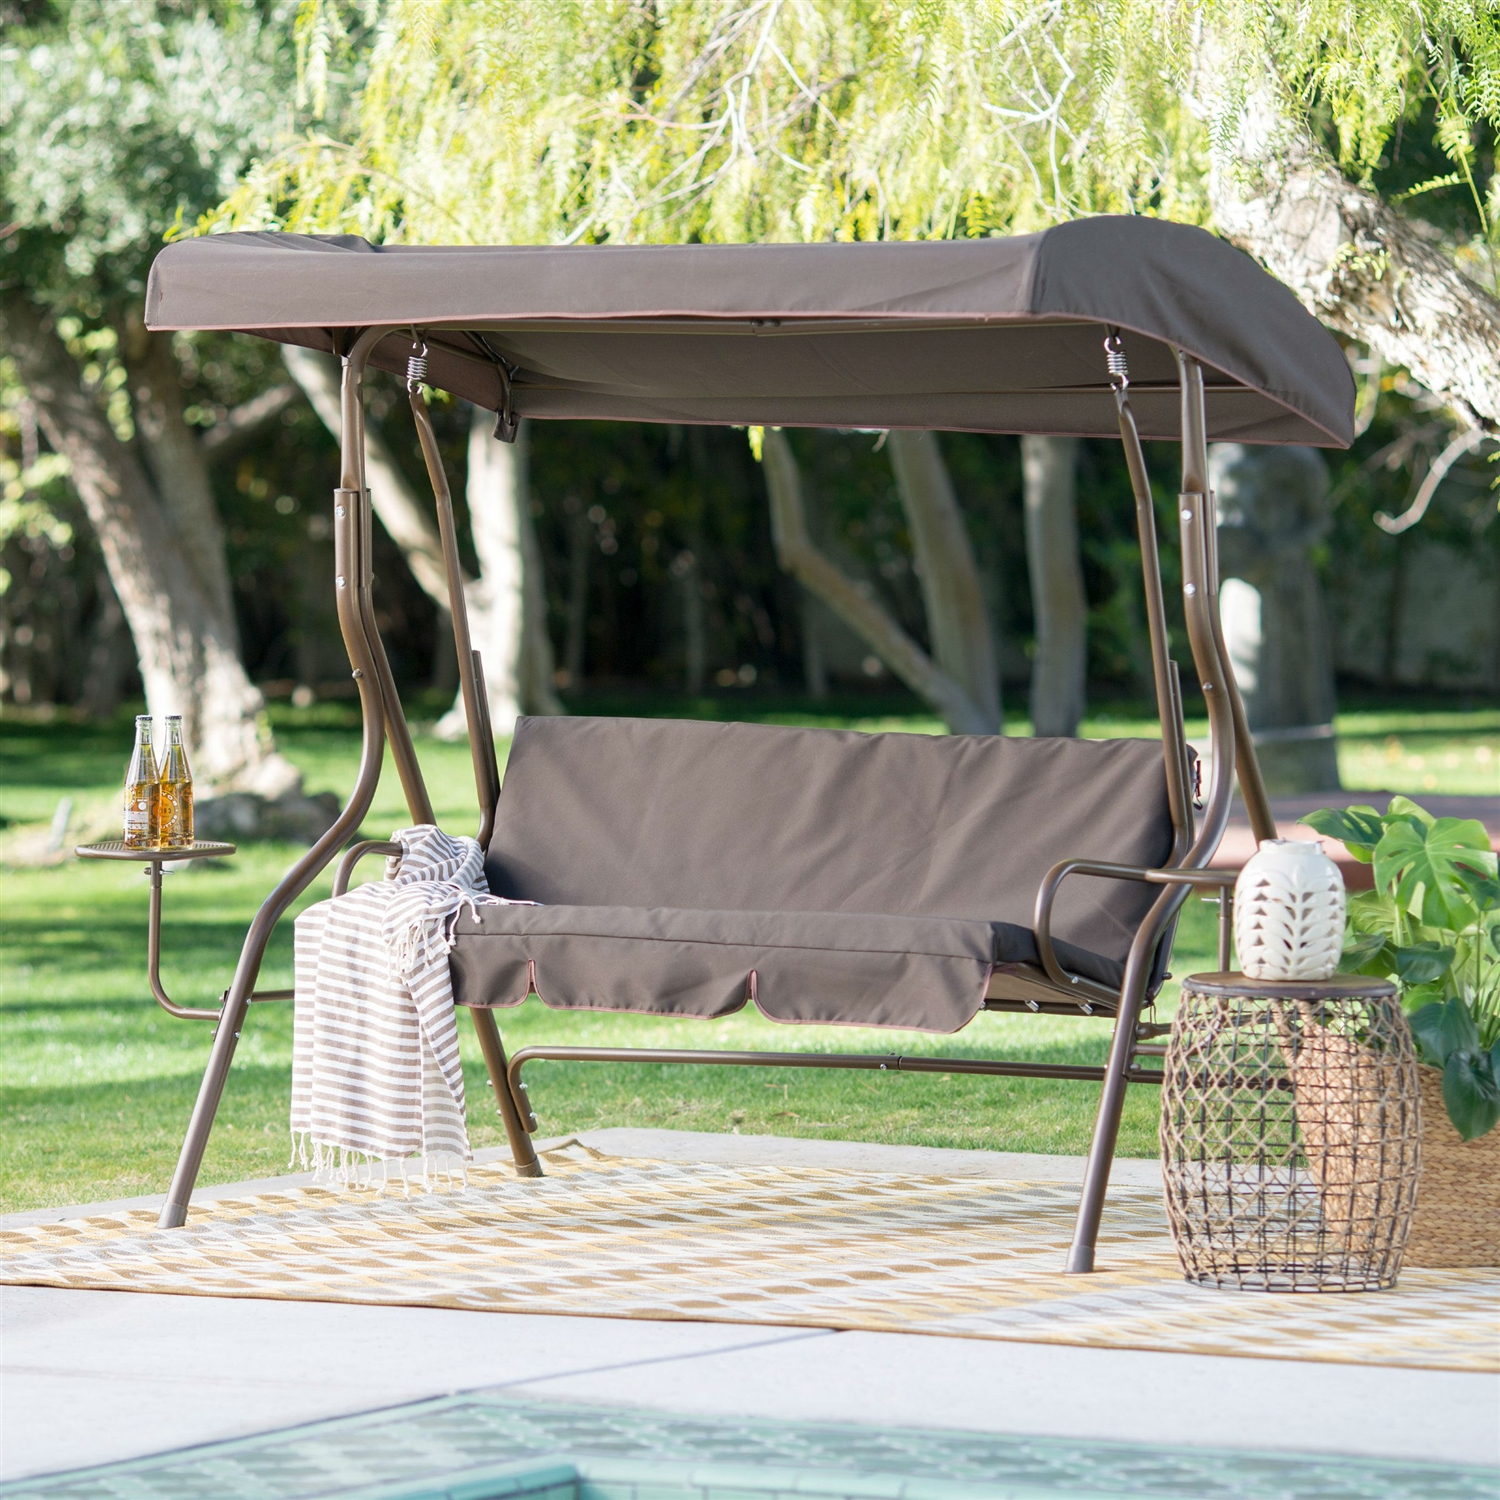 Outdoor Patio 2 Person Porch Swing With Adjustable Tilt